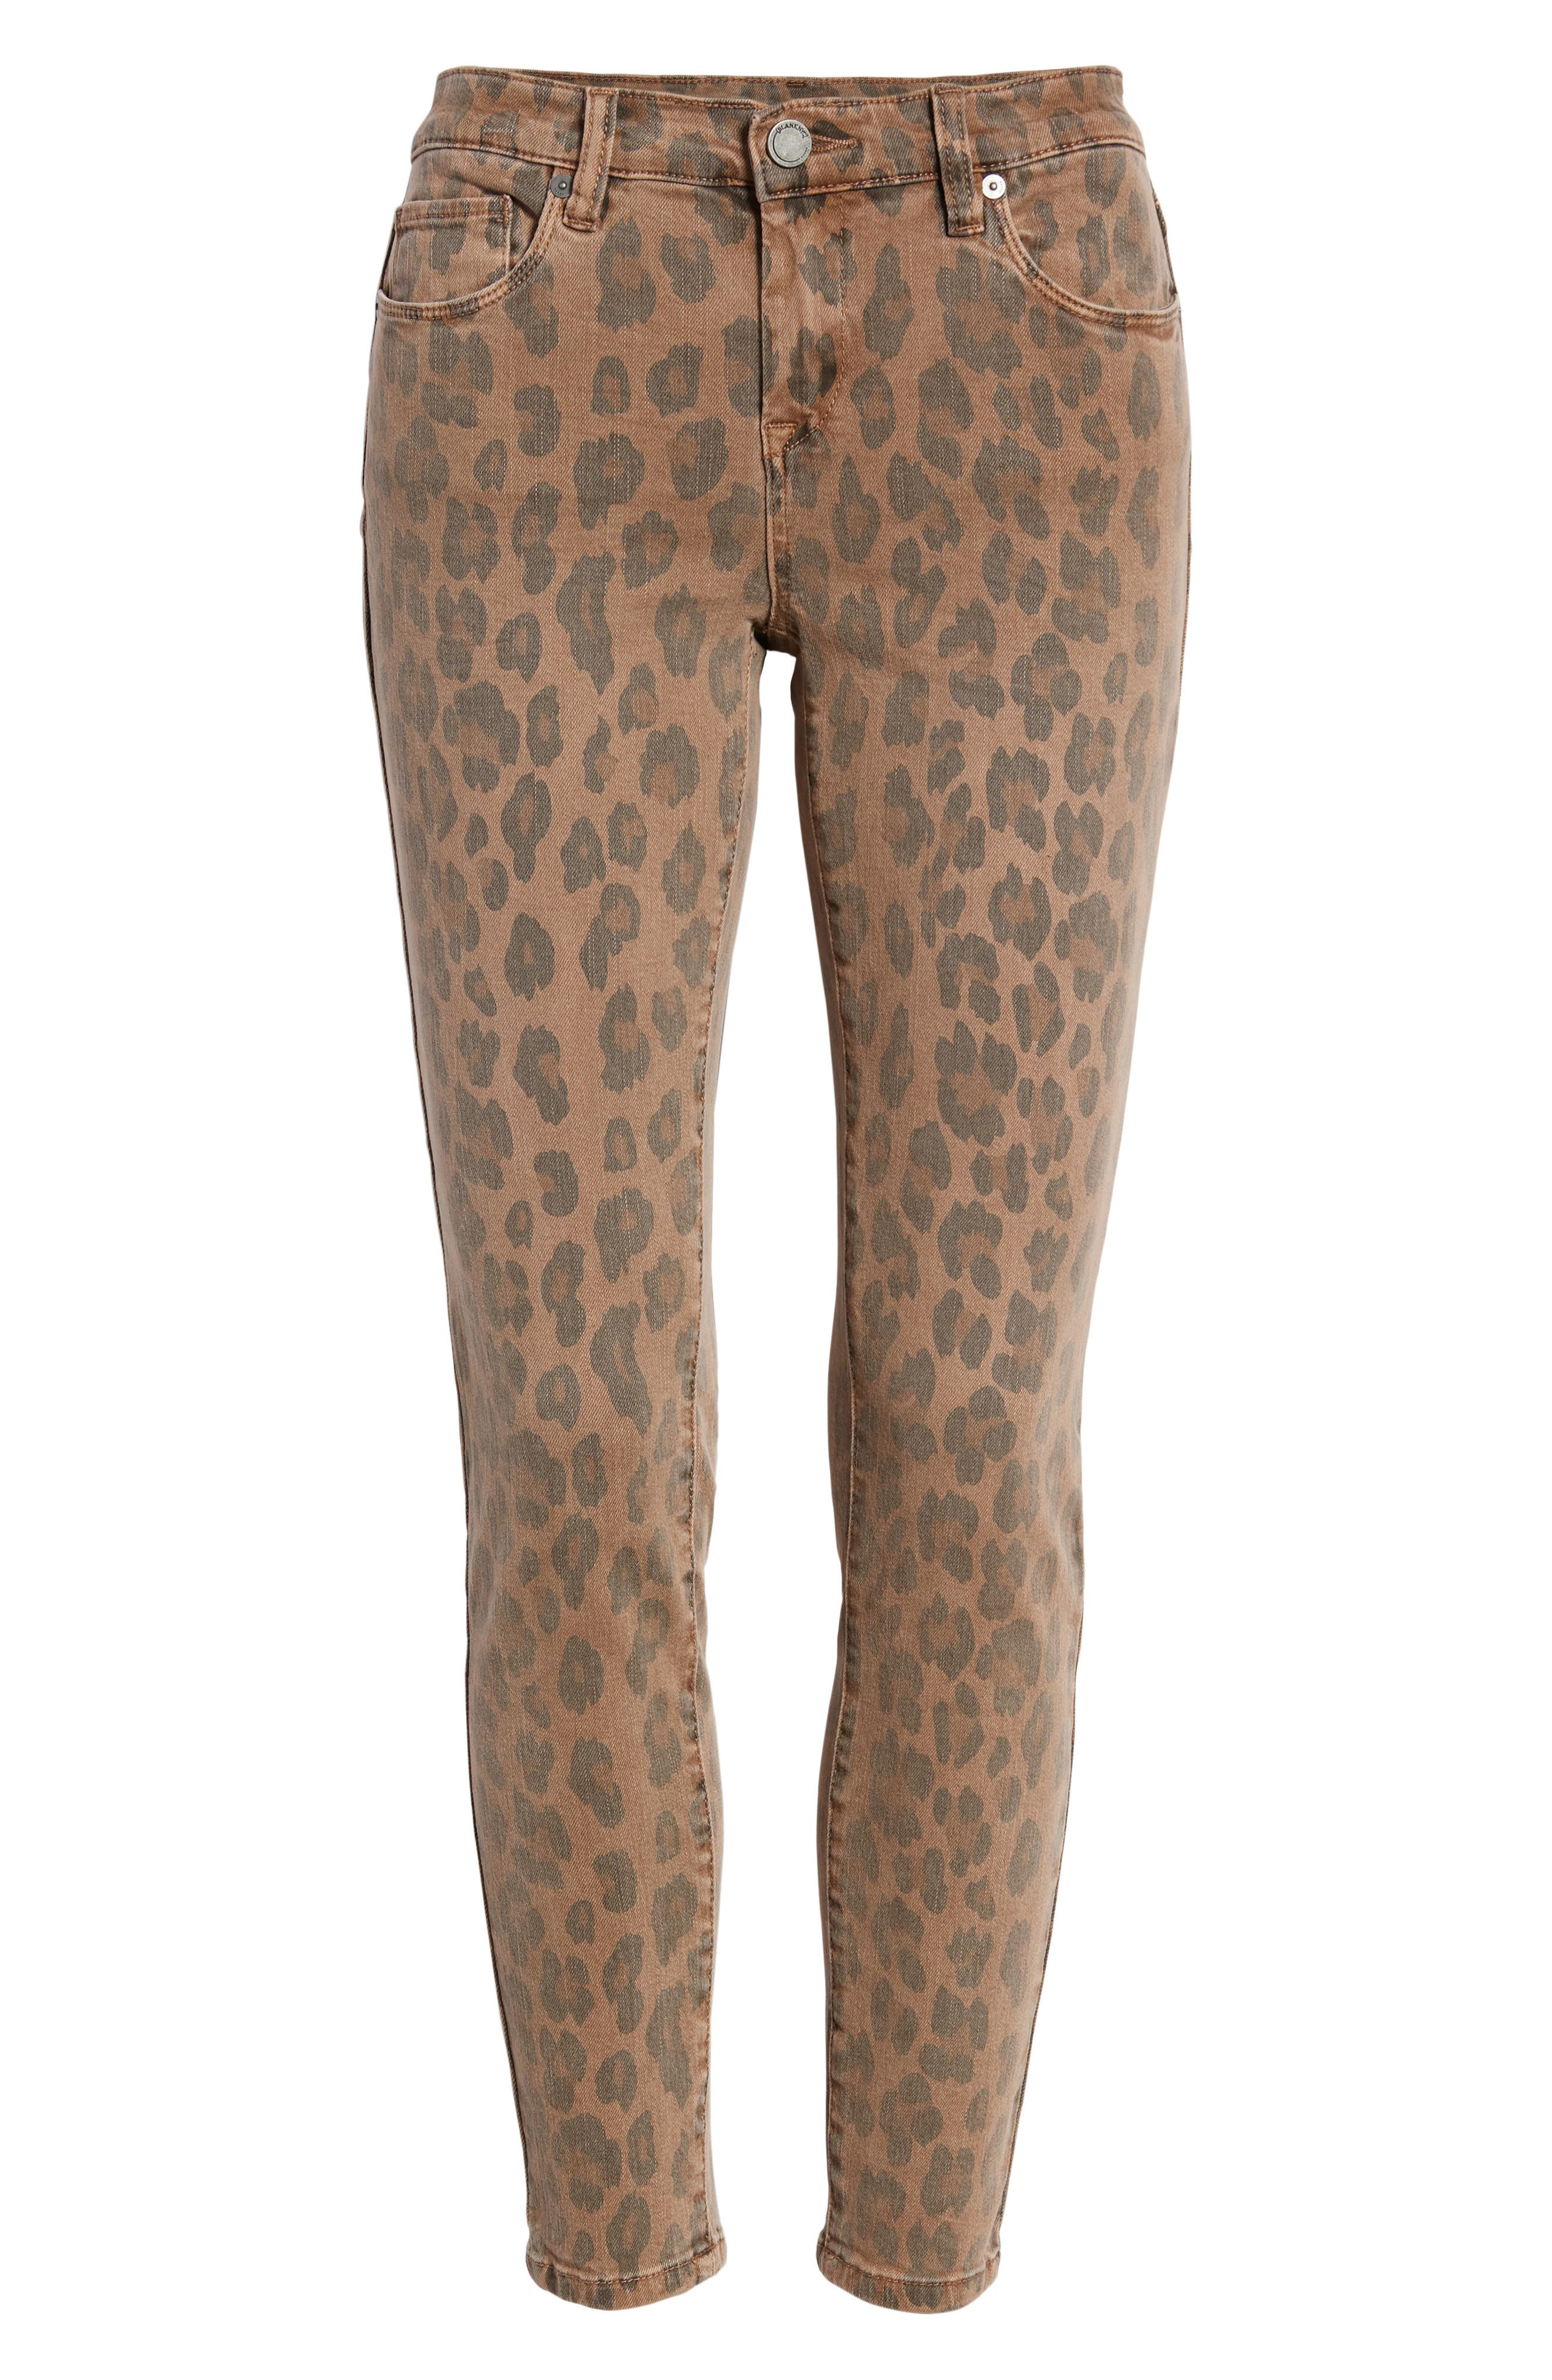 BLANKNYC, The Reade Leopard Crop Skinny Jeans, Alternate thumbnail 7, color, CATWALK